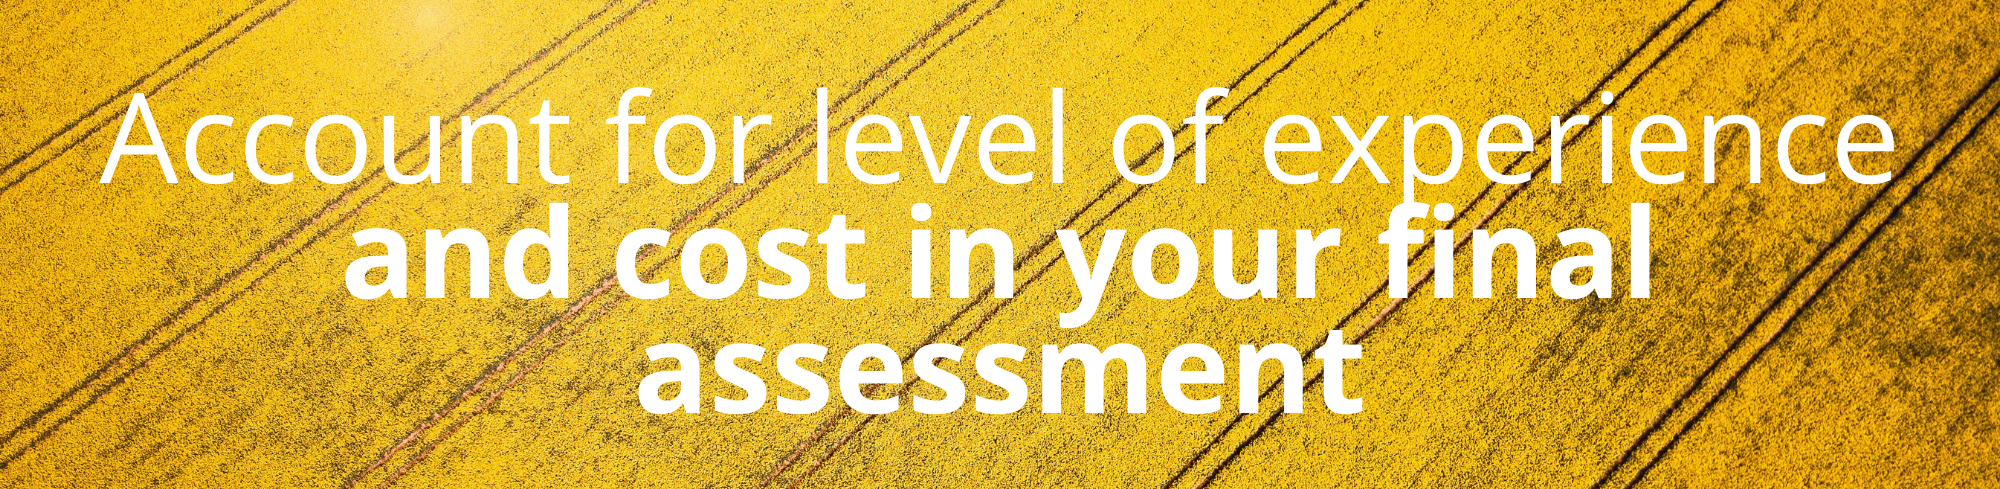 Account for level of experience and cost in your final assessment